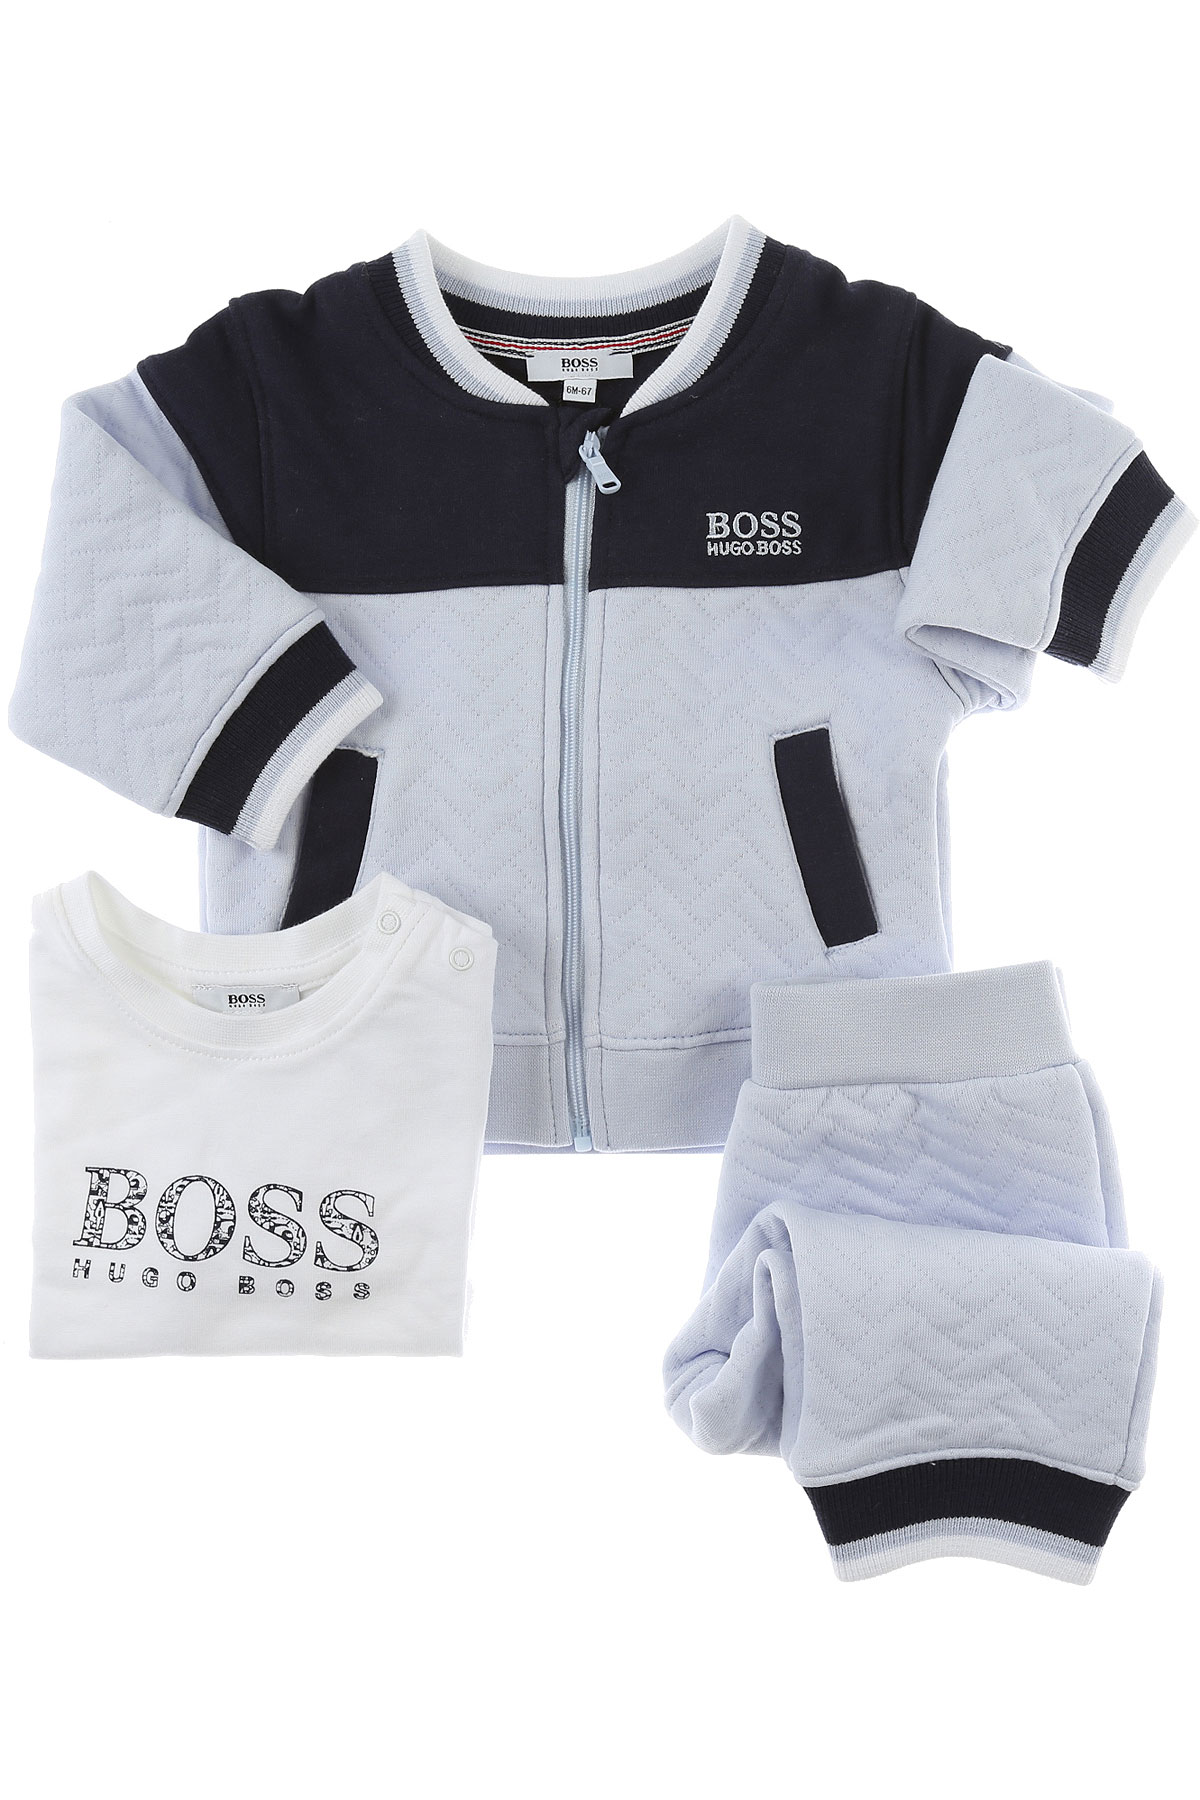 Image of Hugo Boss Baby Sets for Boys, White, Cotton, 2017, 12M 18M